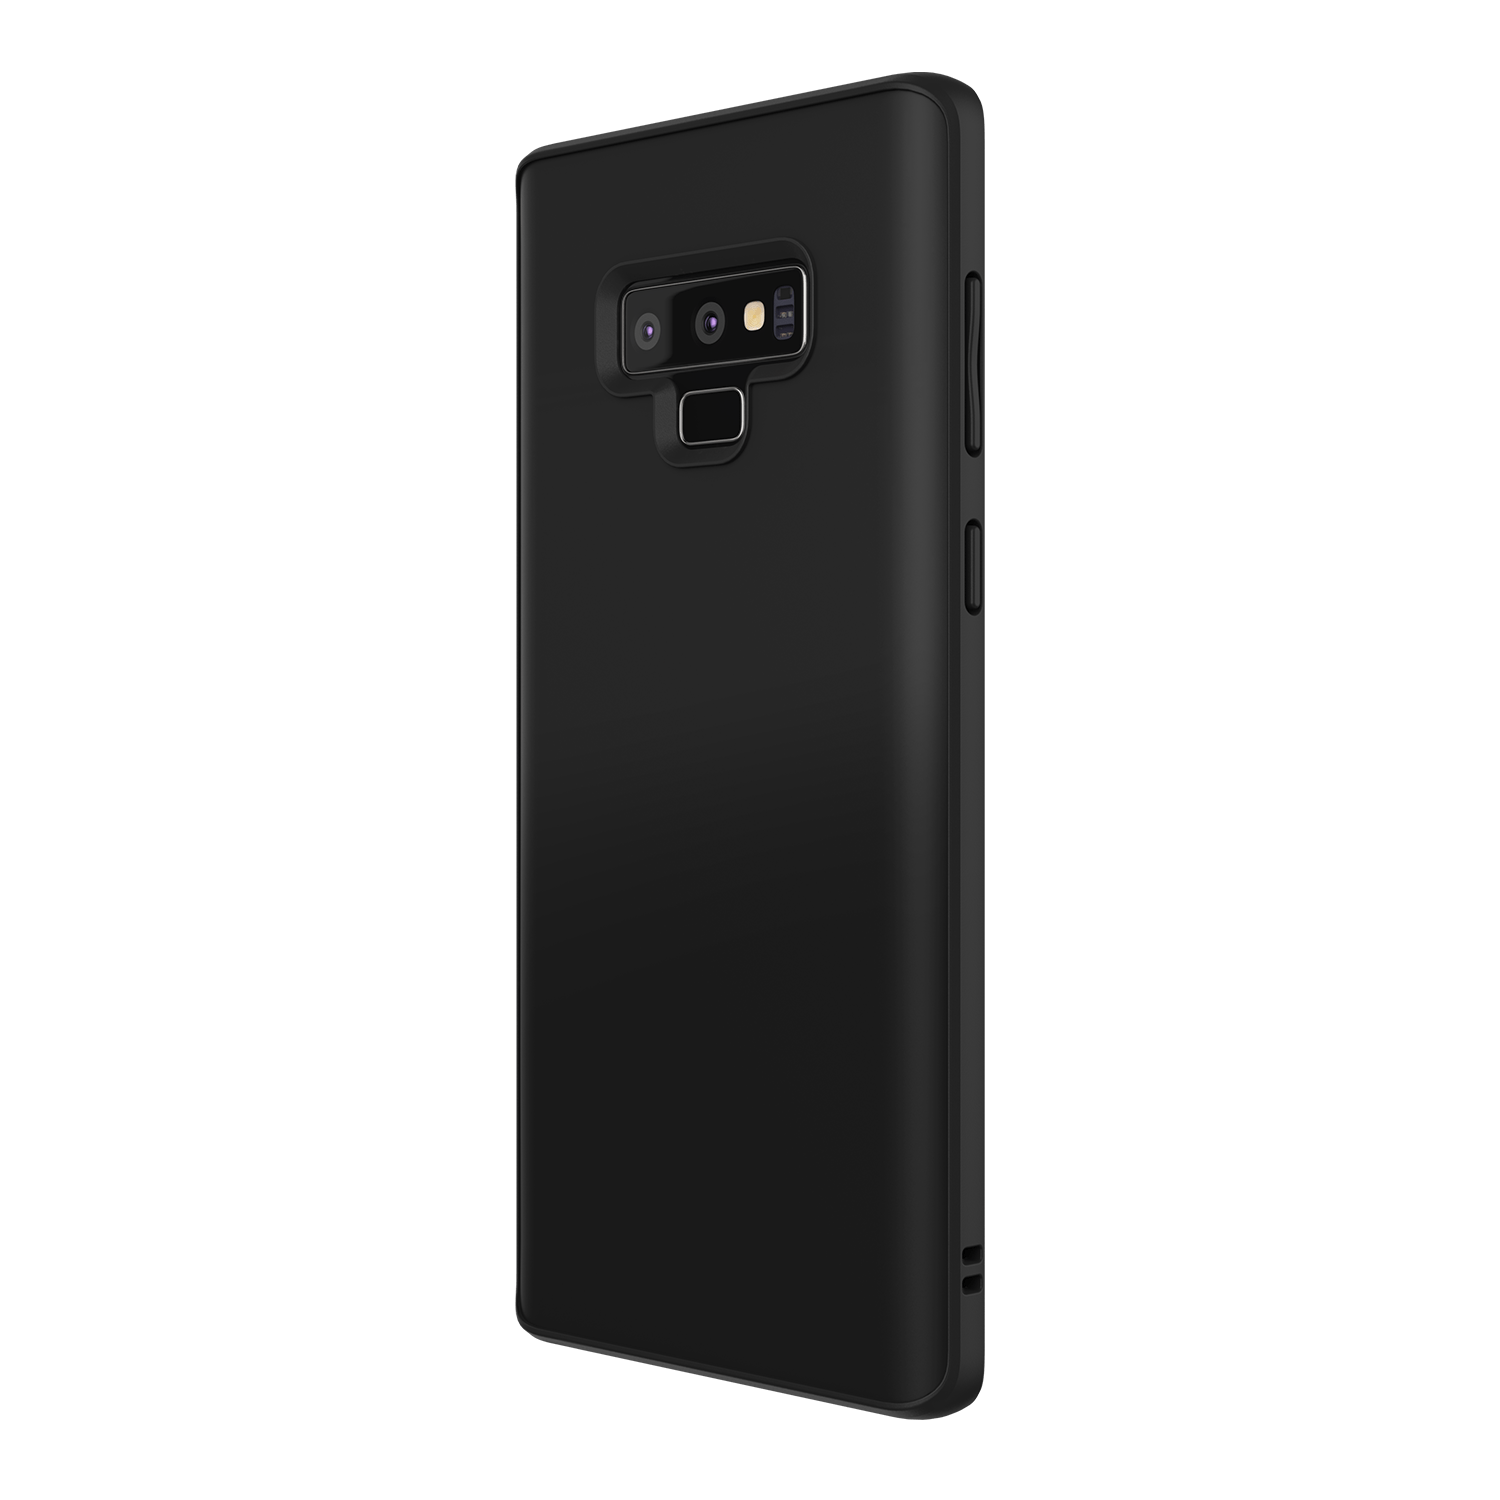 RhinoShield - SolidSuit for Samsung Galaxy Note 9